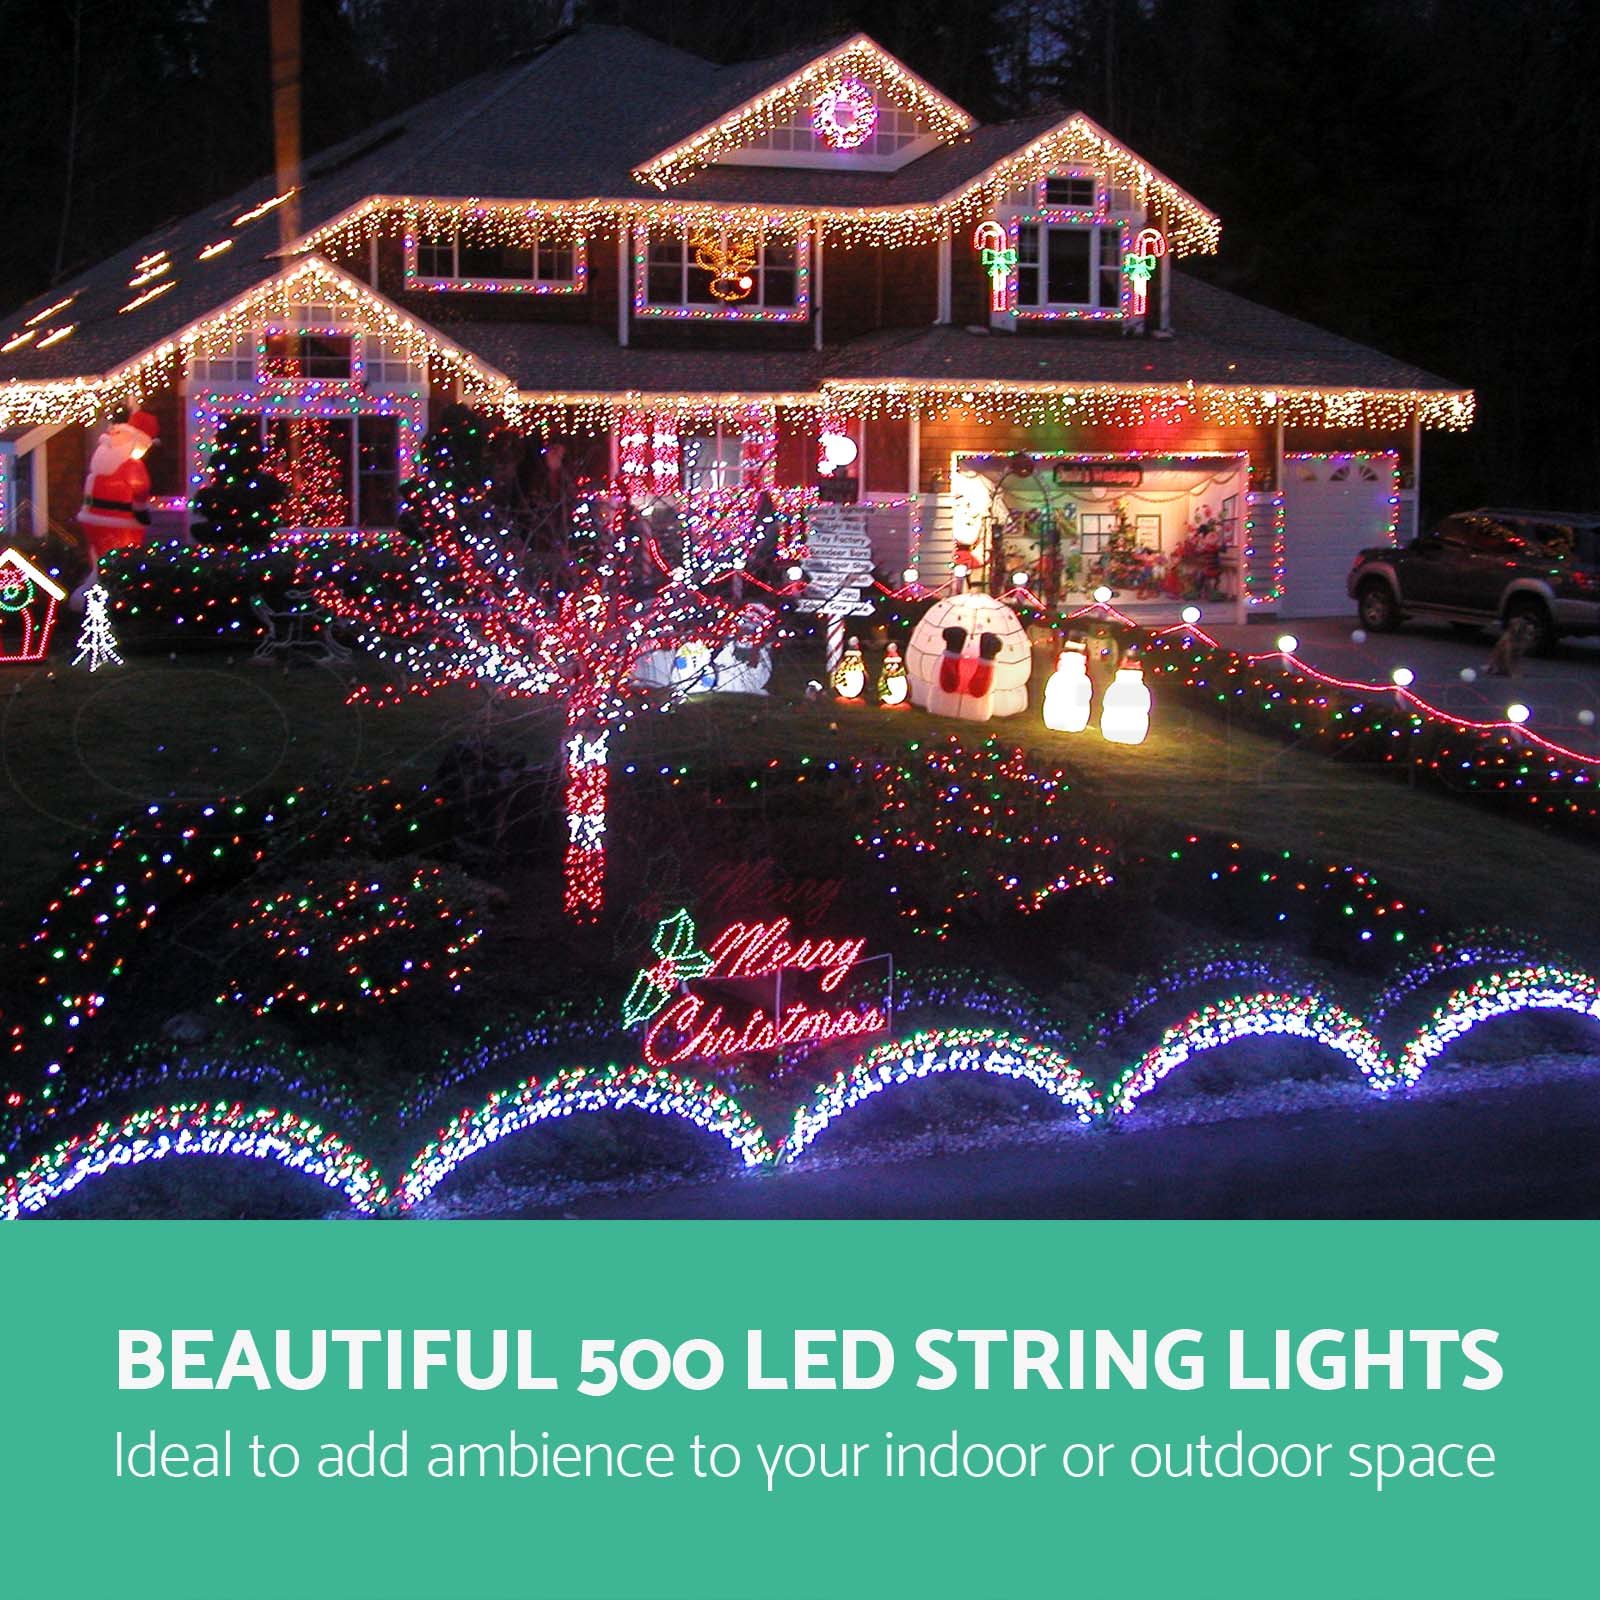 Outdoor Party Lights Screwfix: 500 LED Christmas String Lights Display Outdoor Fairy